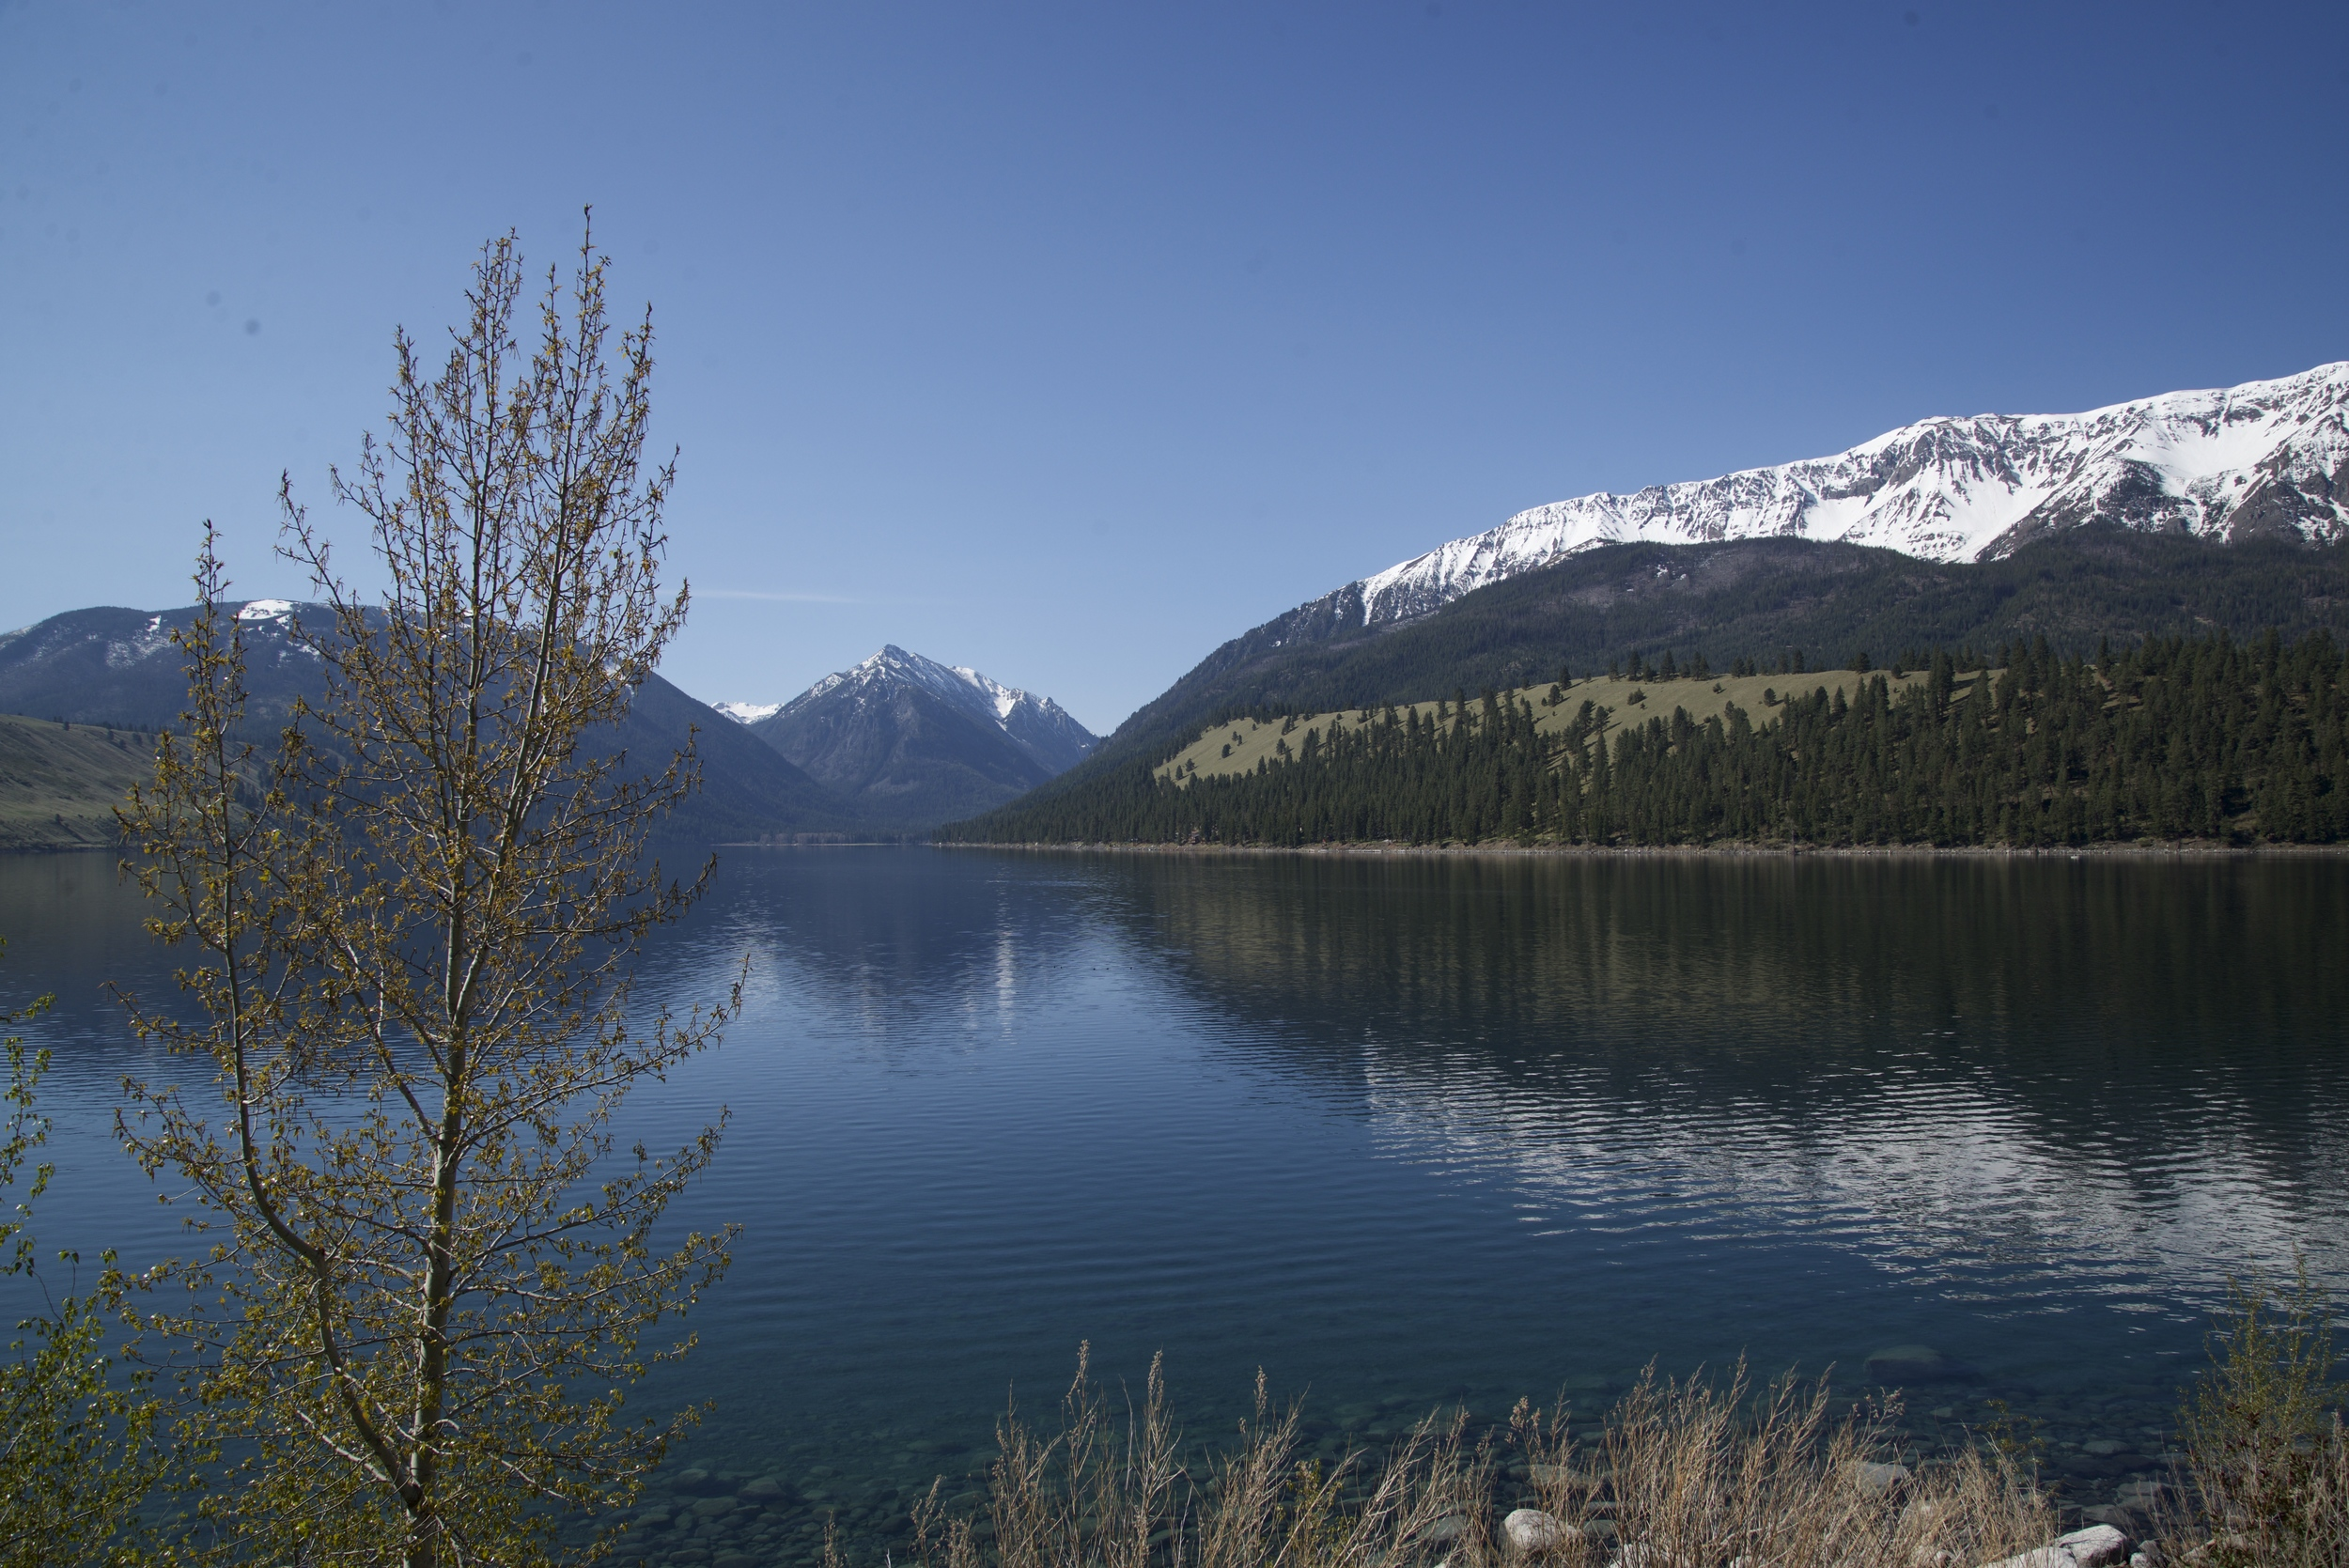 Wallowa Lake, Joseph, Oregon